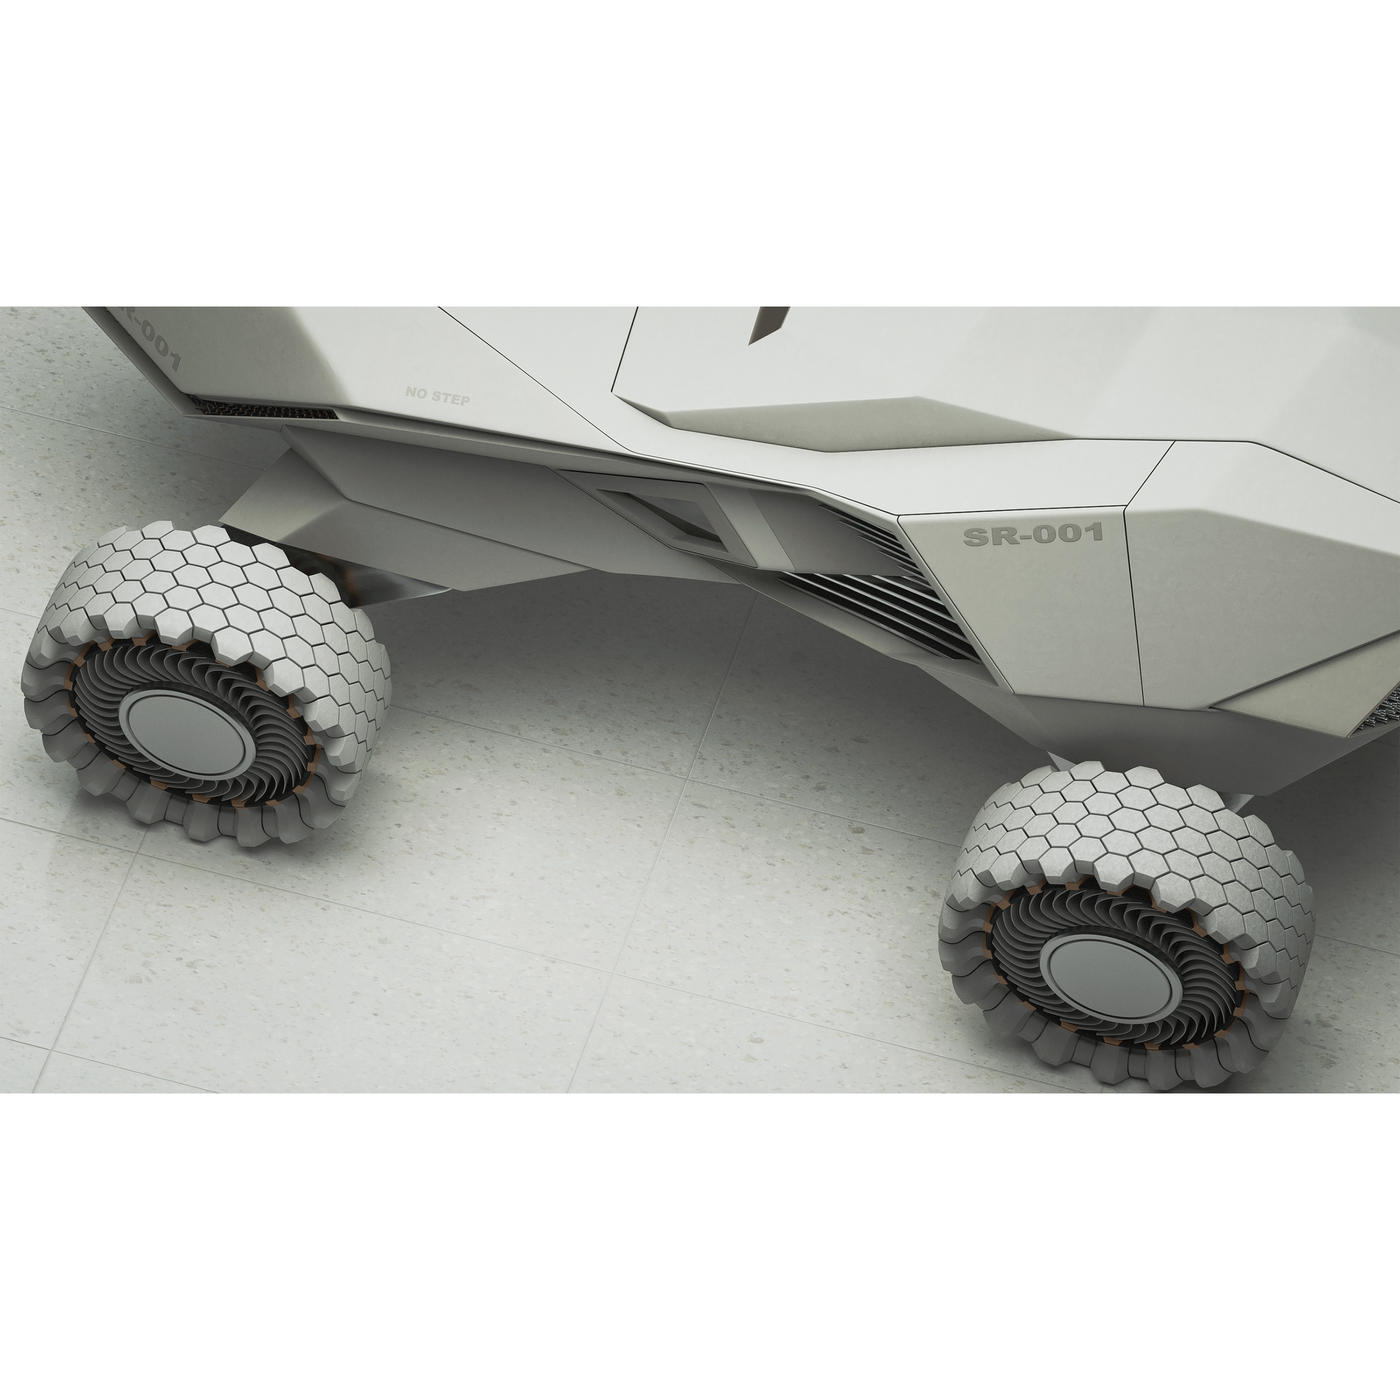 Space Rover - SR-001